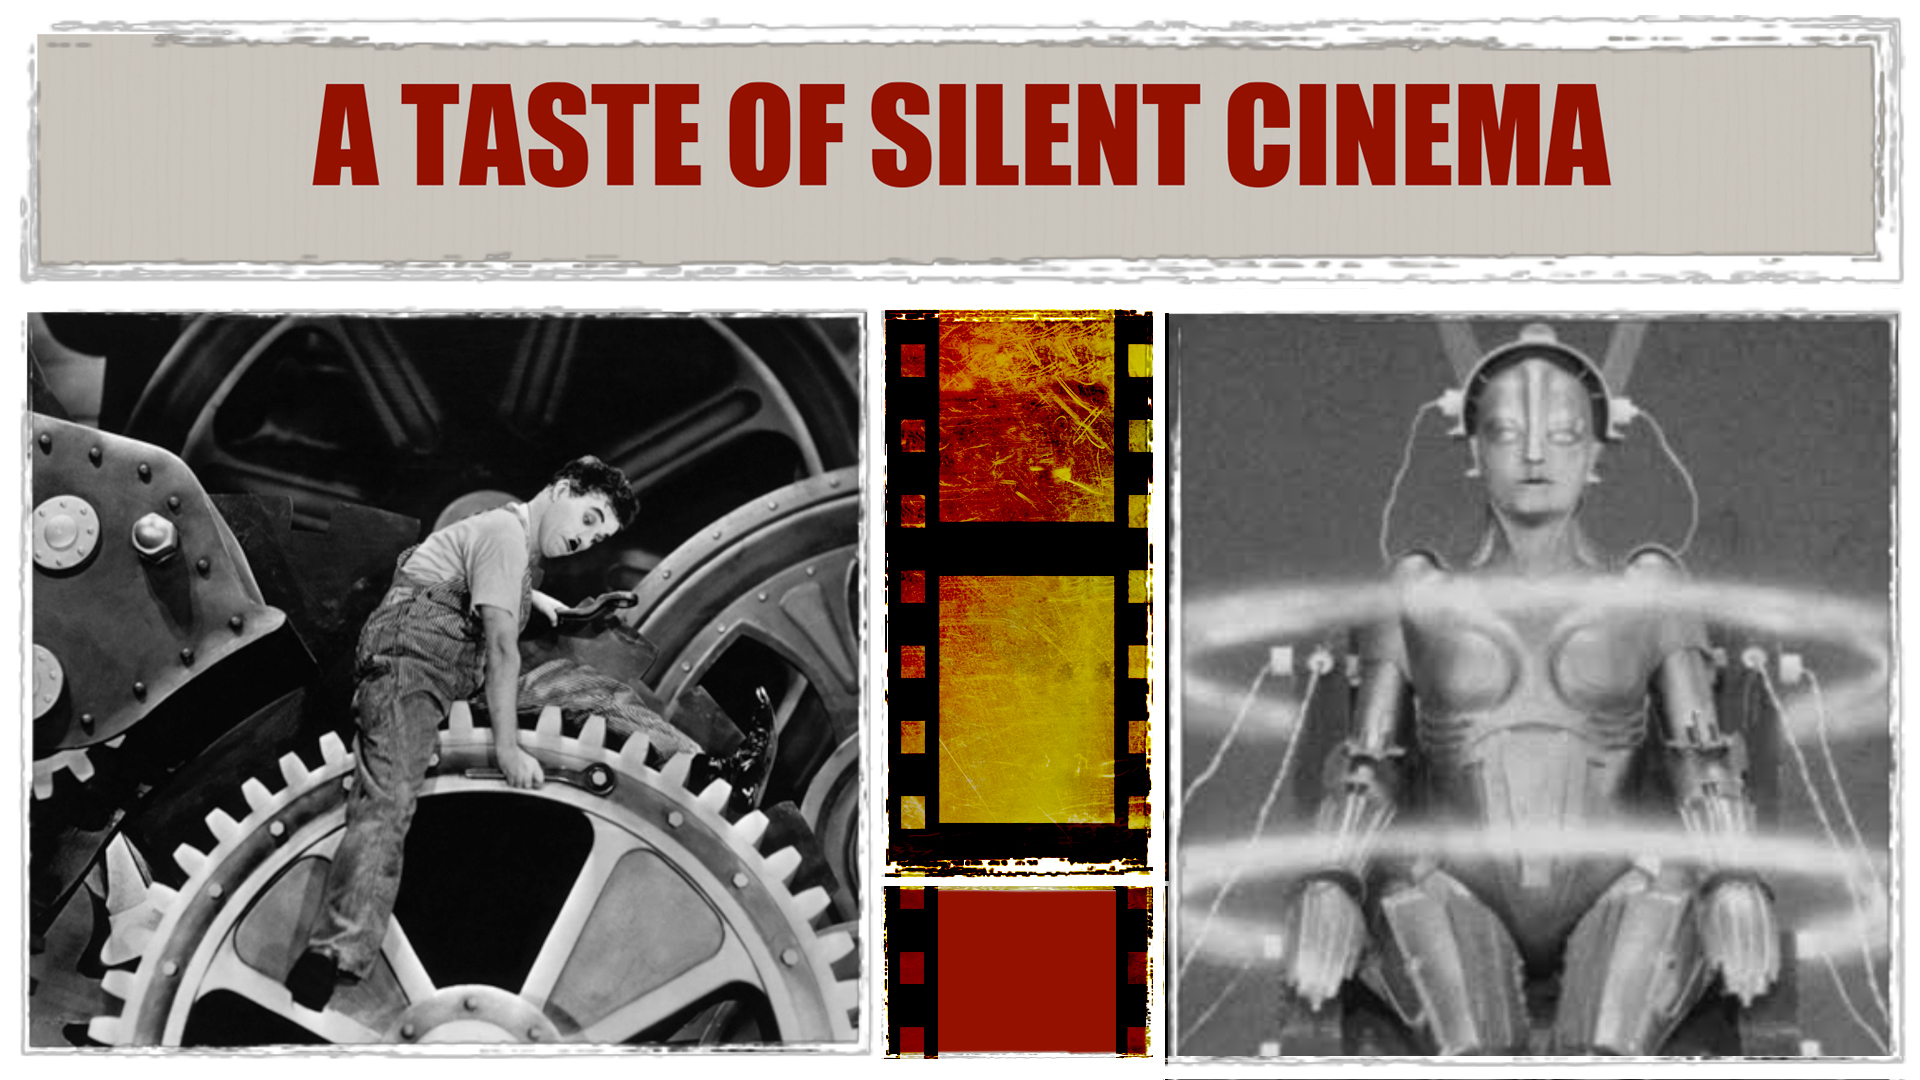 A Taste of Silent Cinema - photo of Charlie Chaplin turning the gears of the clock - and another close up photo of a woman - with movie reel image in the middle.